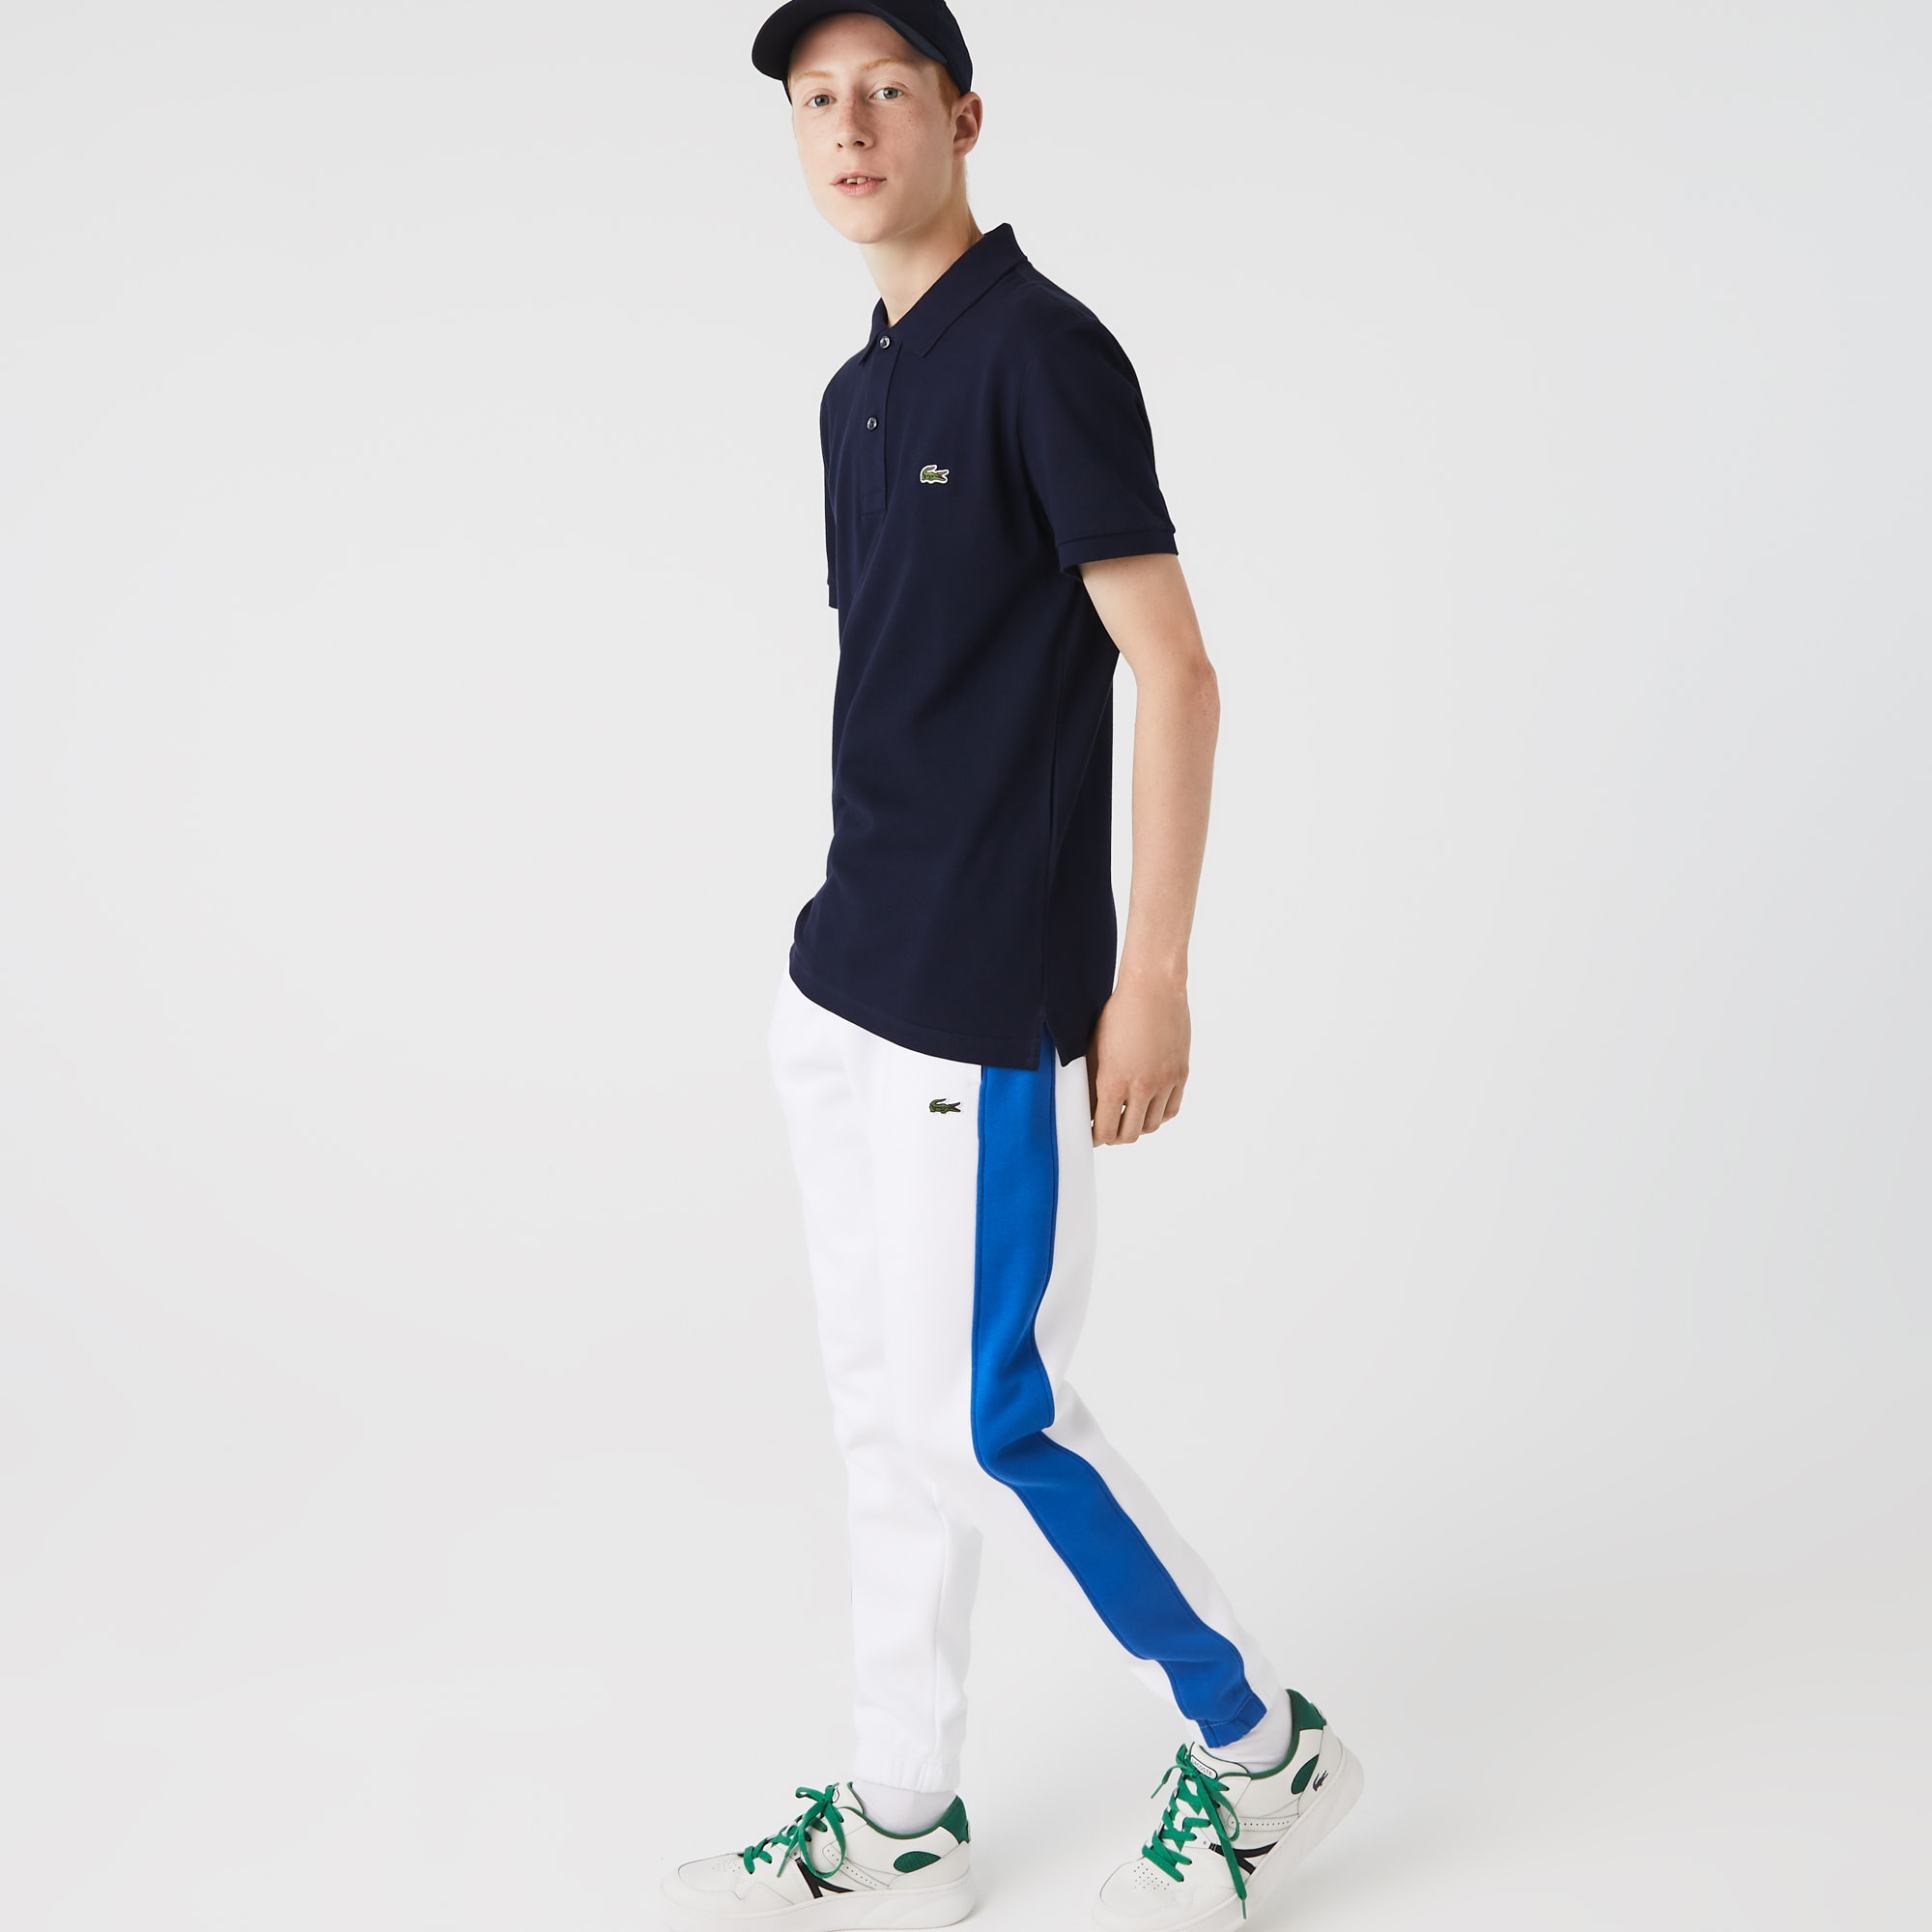 9d85127c9a35a All Poloshirts   The Polo Collection   LACOSTE